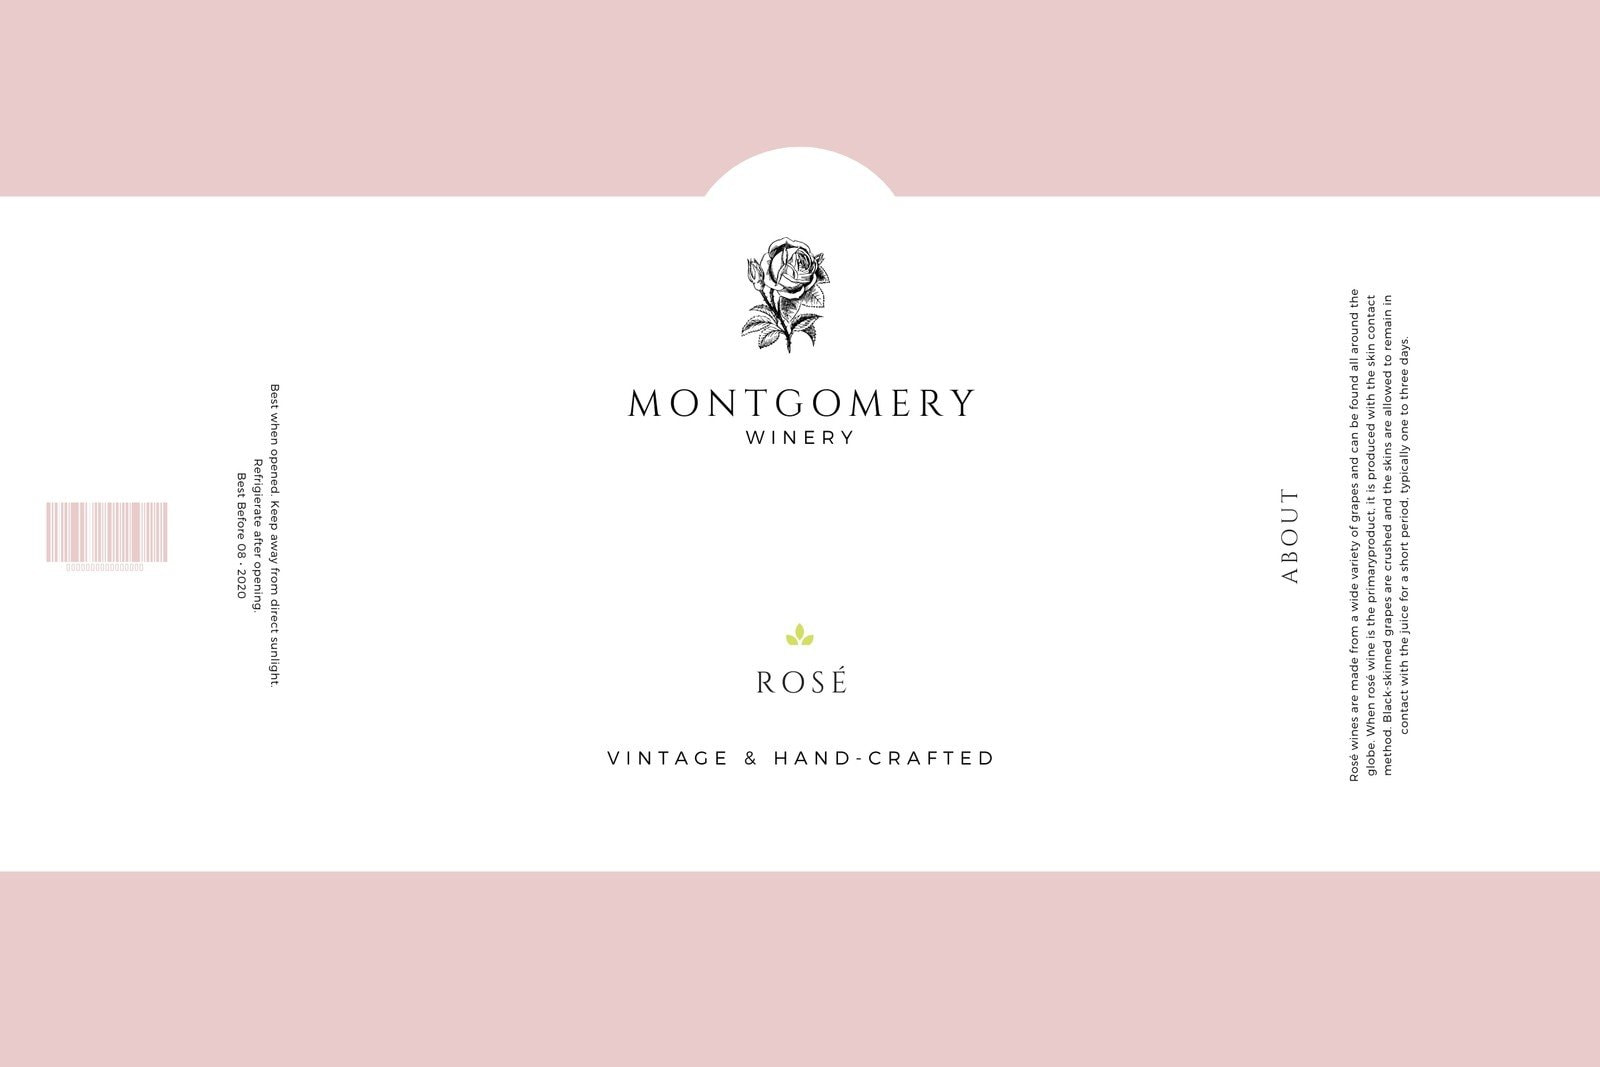 Pale Pink & White Minimalist Simple Elegant Wine Bottle Label